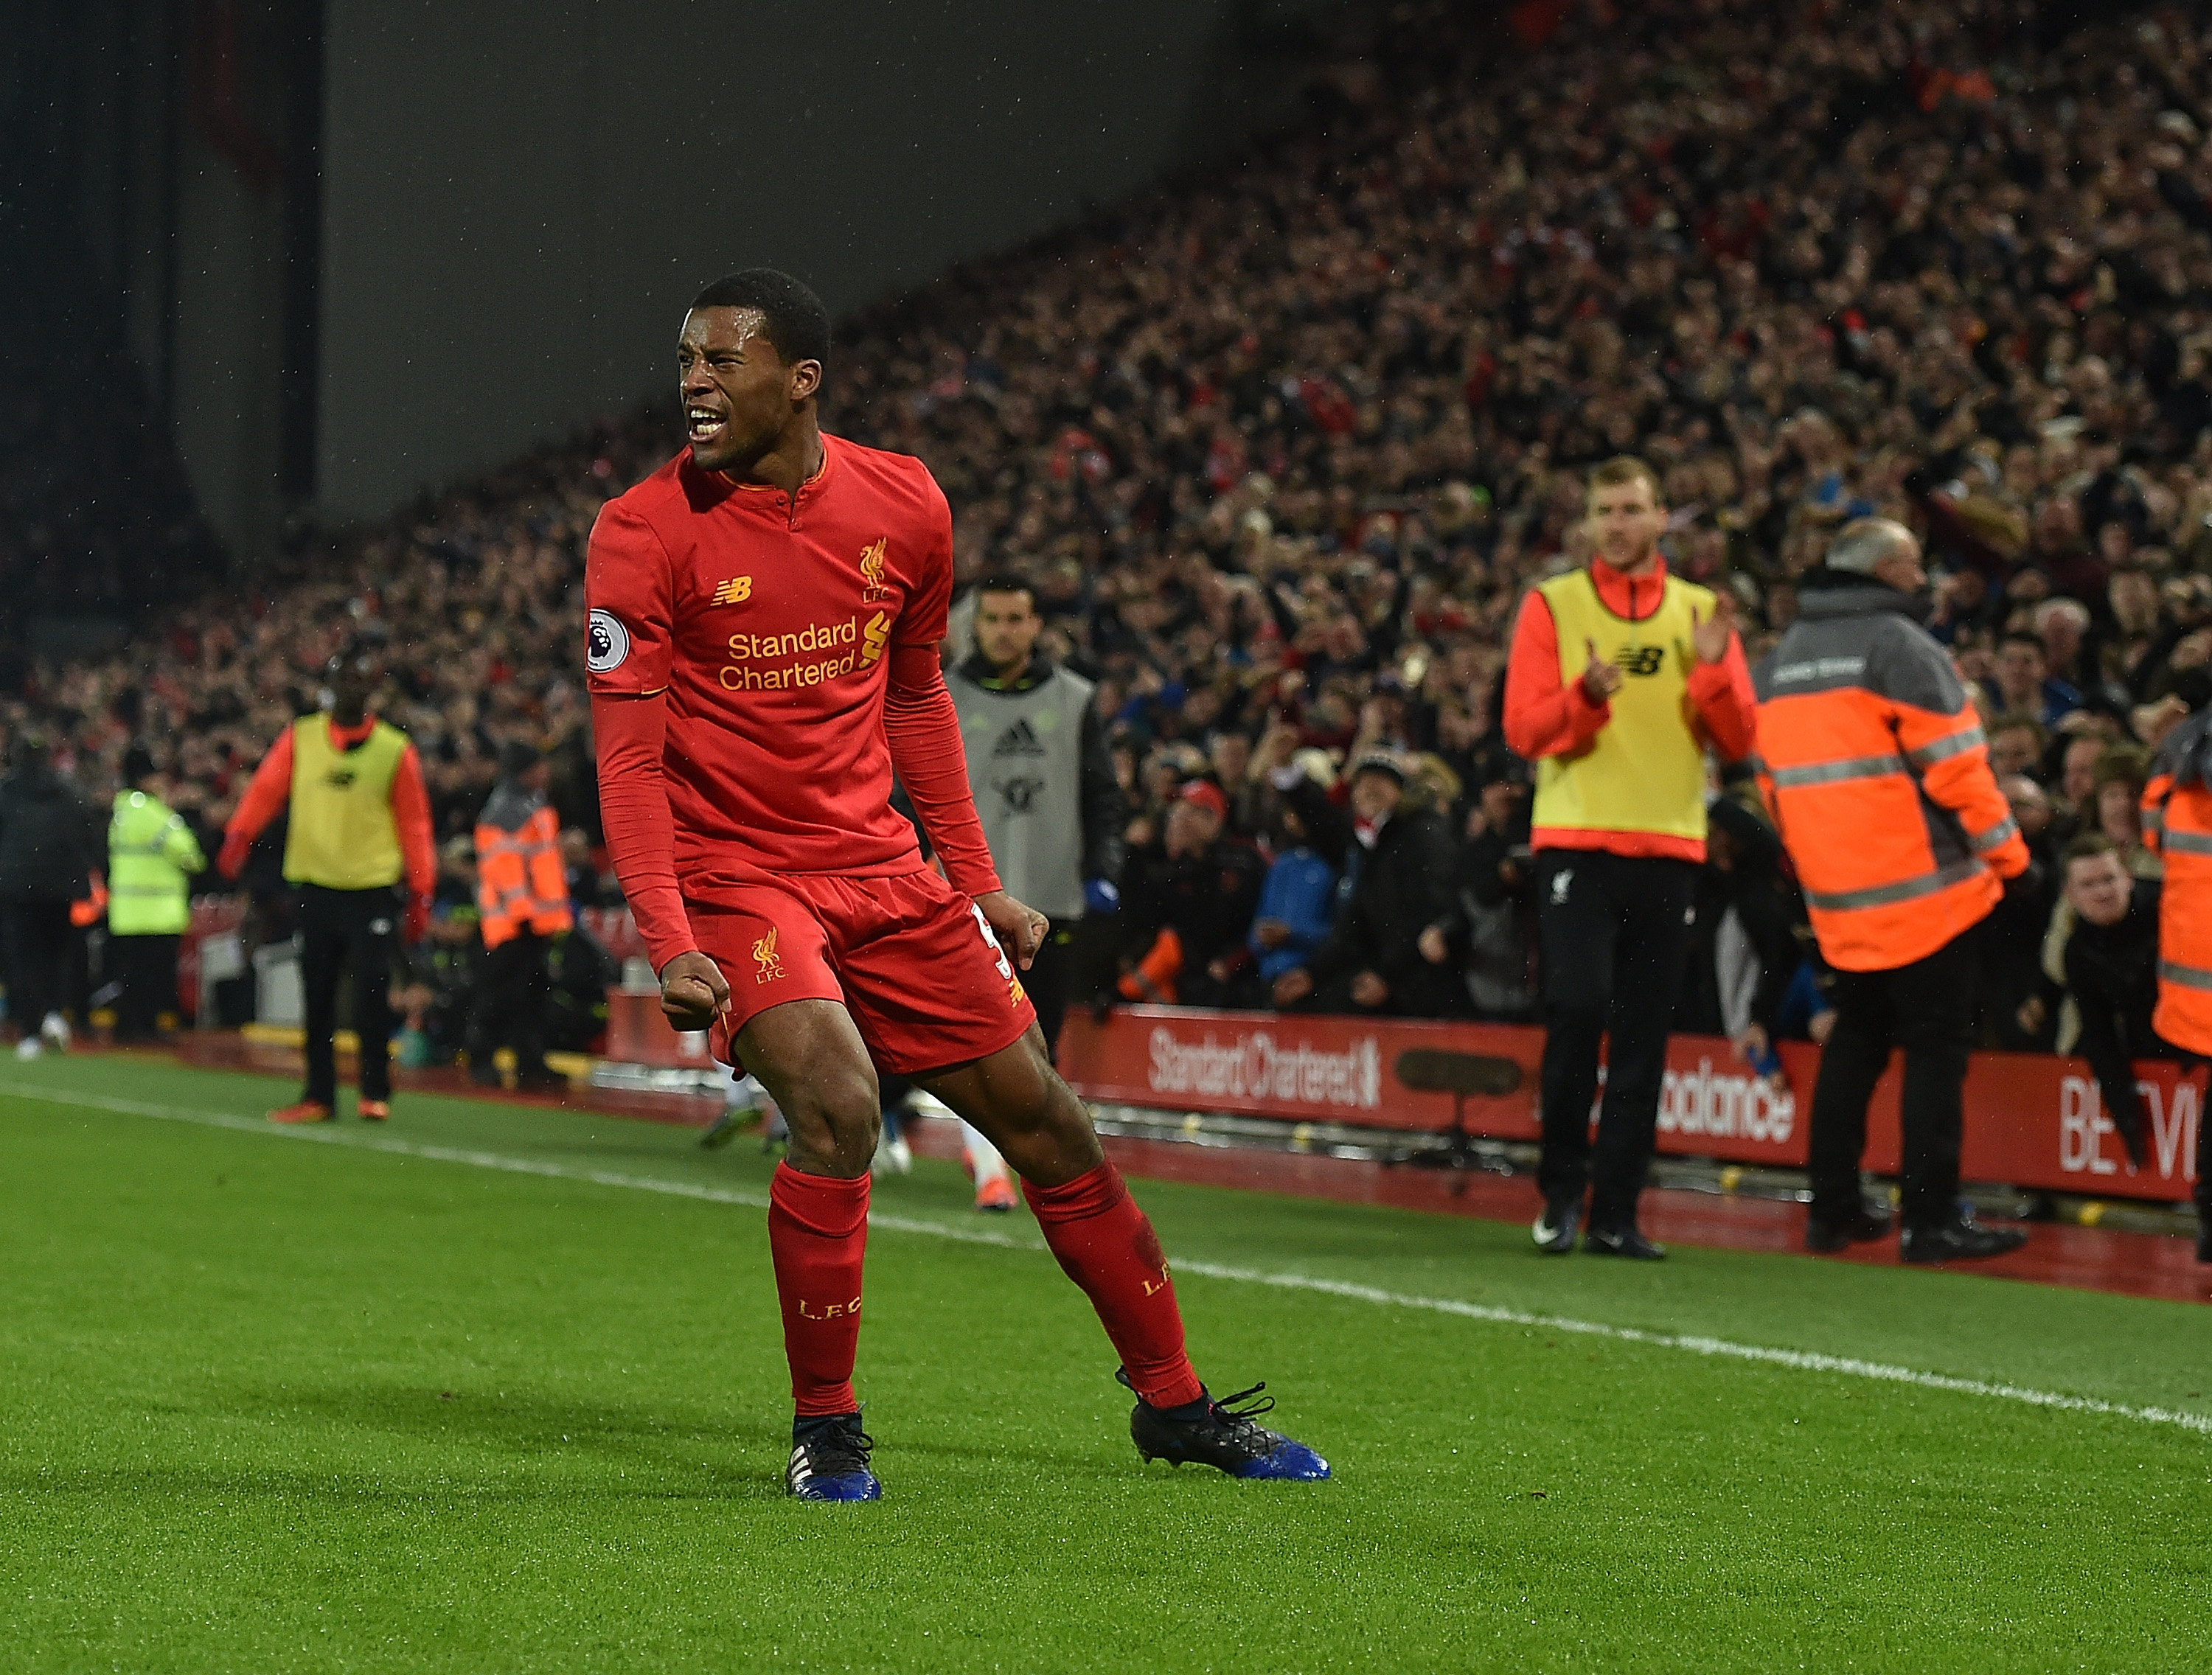 LIVERPOOL, ENGLAND - JANUARY 31: (THE SUN OUT, THE SUN ON SUNDAY OUT) Georginio Wijnaldum of Liverpool Celebrates after scoring the first for liverpool during the Premier League match between Liverpool and Chelsea at Anfield on January 31, 2017 in Liverpool, England. (Photo by Andrew Powell/Liverpool FC via Getty Images)